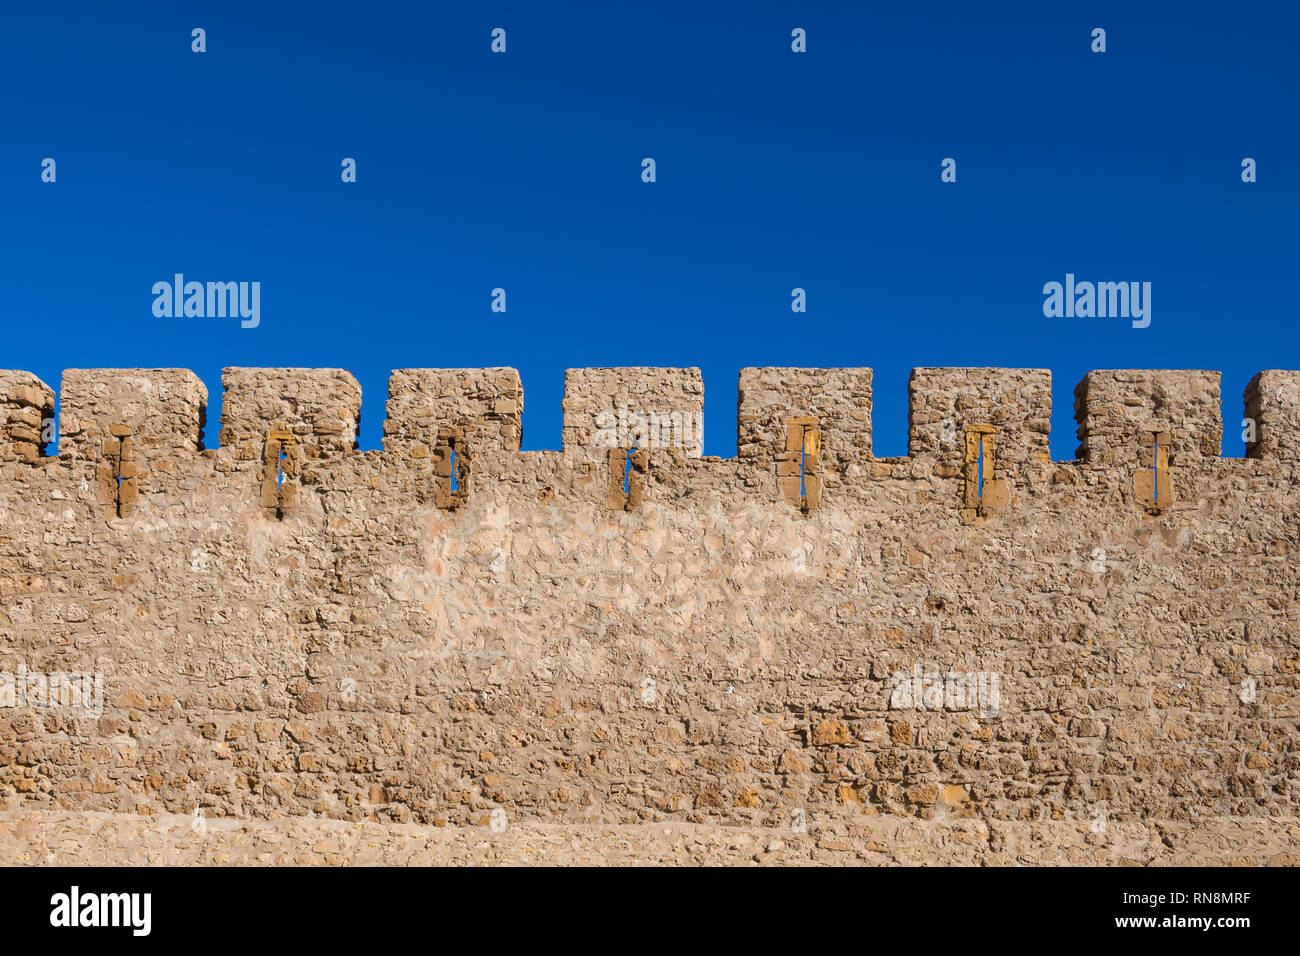 78cd71d3f80a Detai of the stone wall of the former historical portuguese fortress  (castle) Dar el